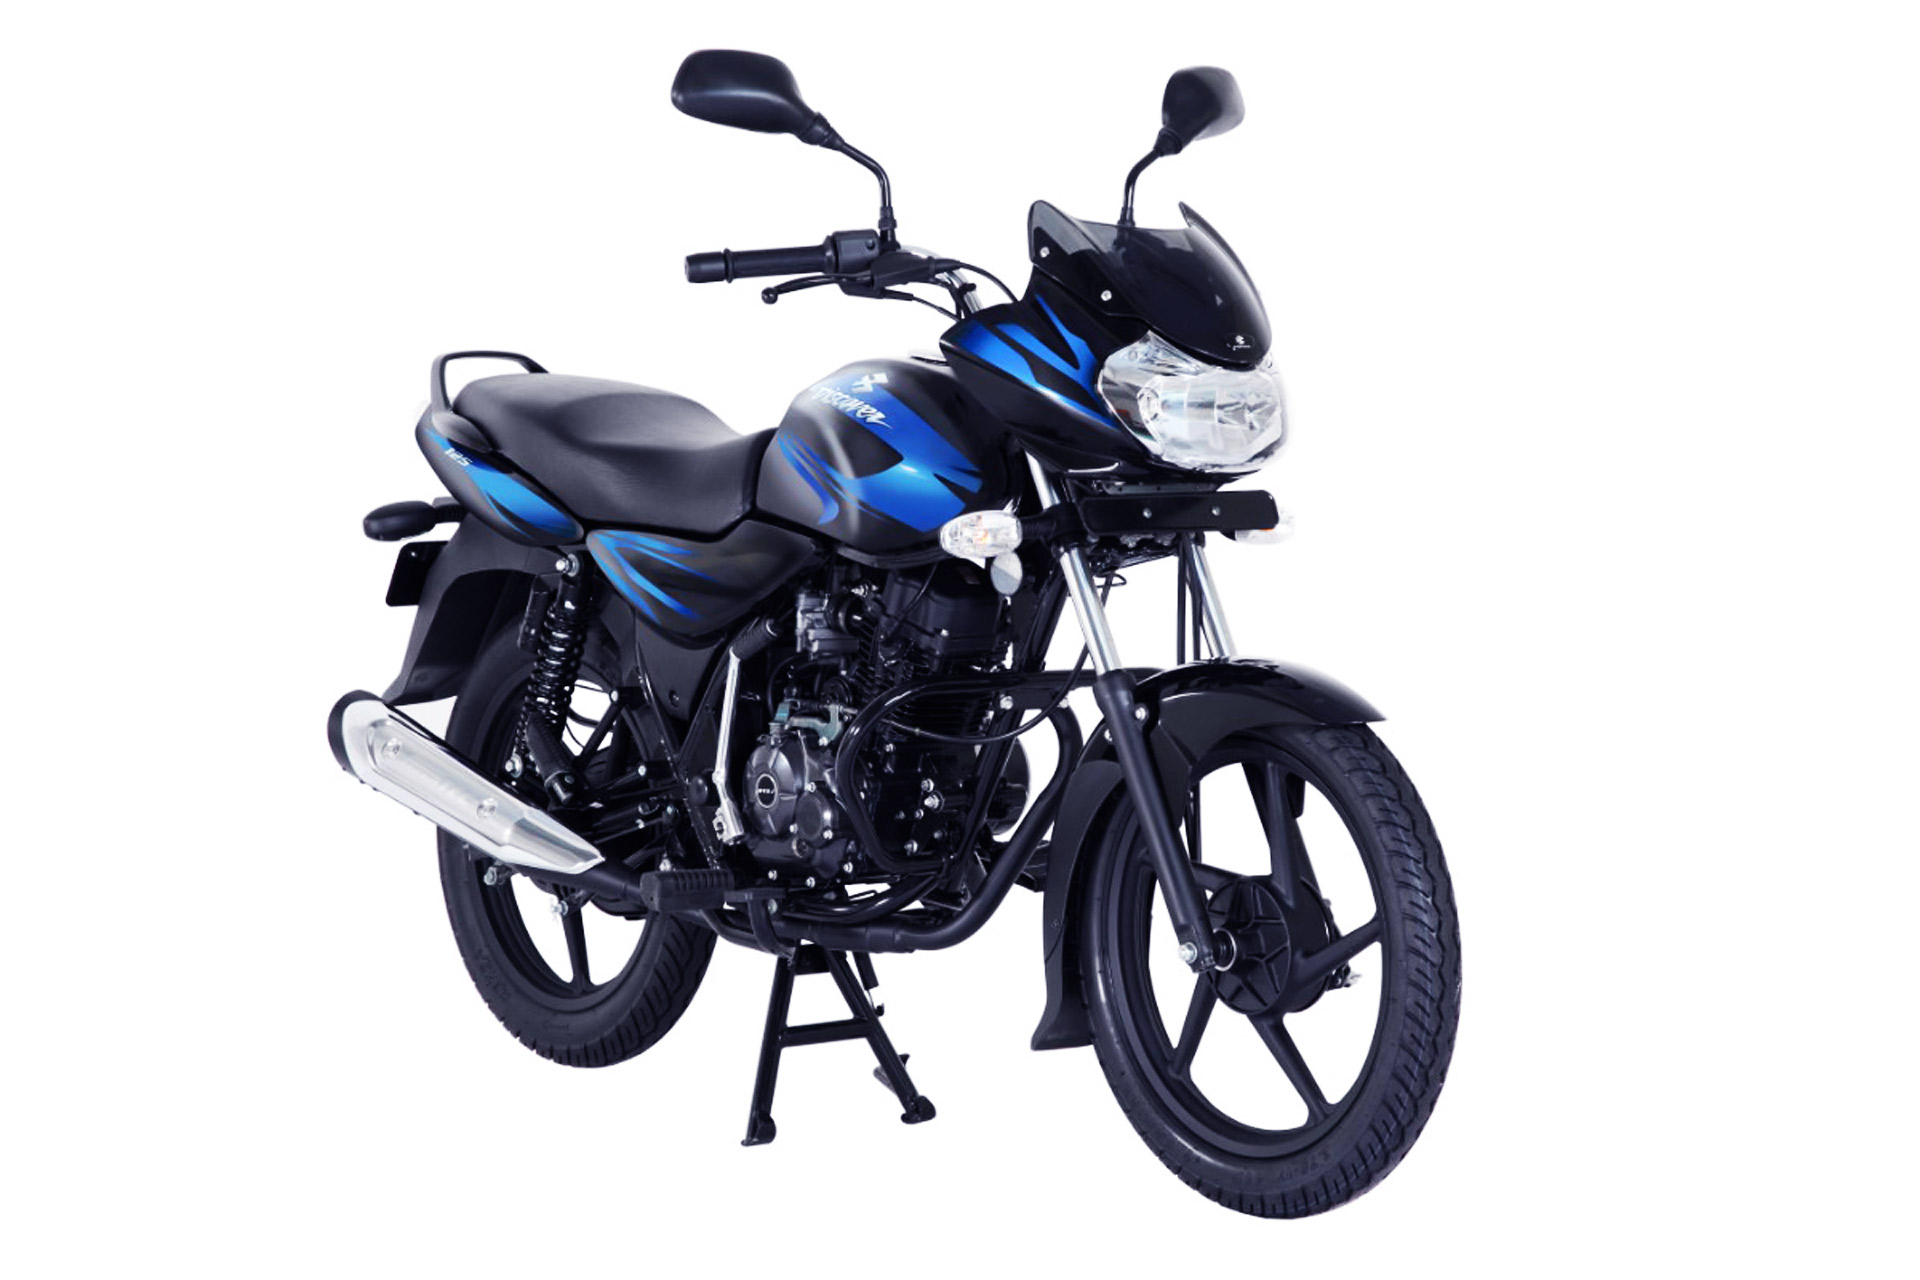 Bajaj Discover 125 Motorcycle Specification